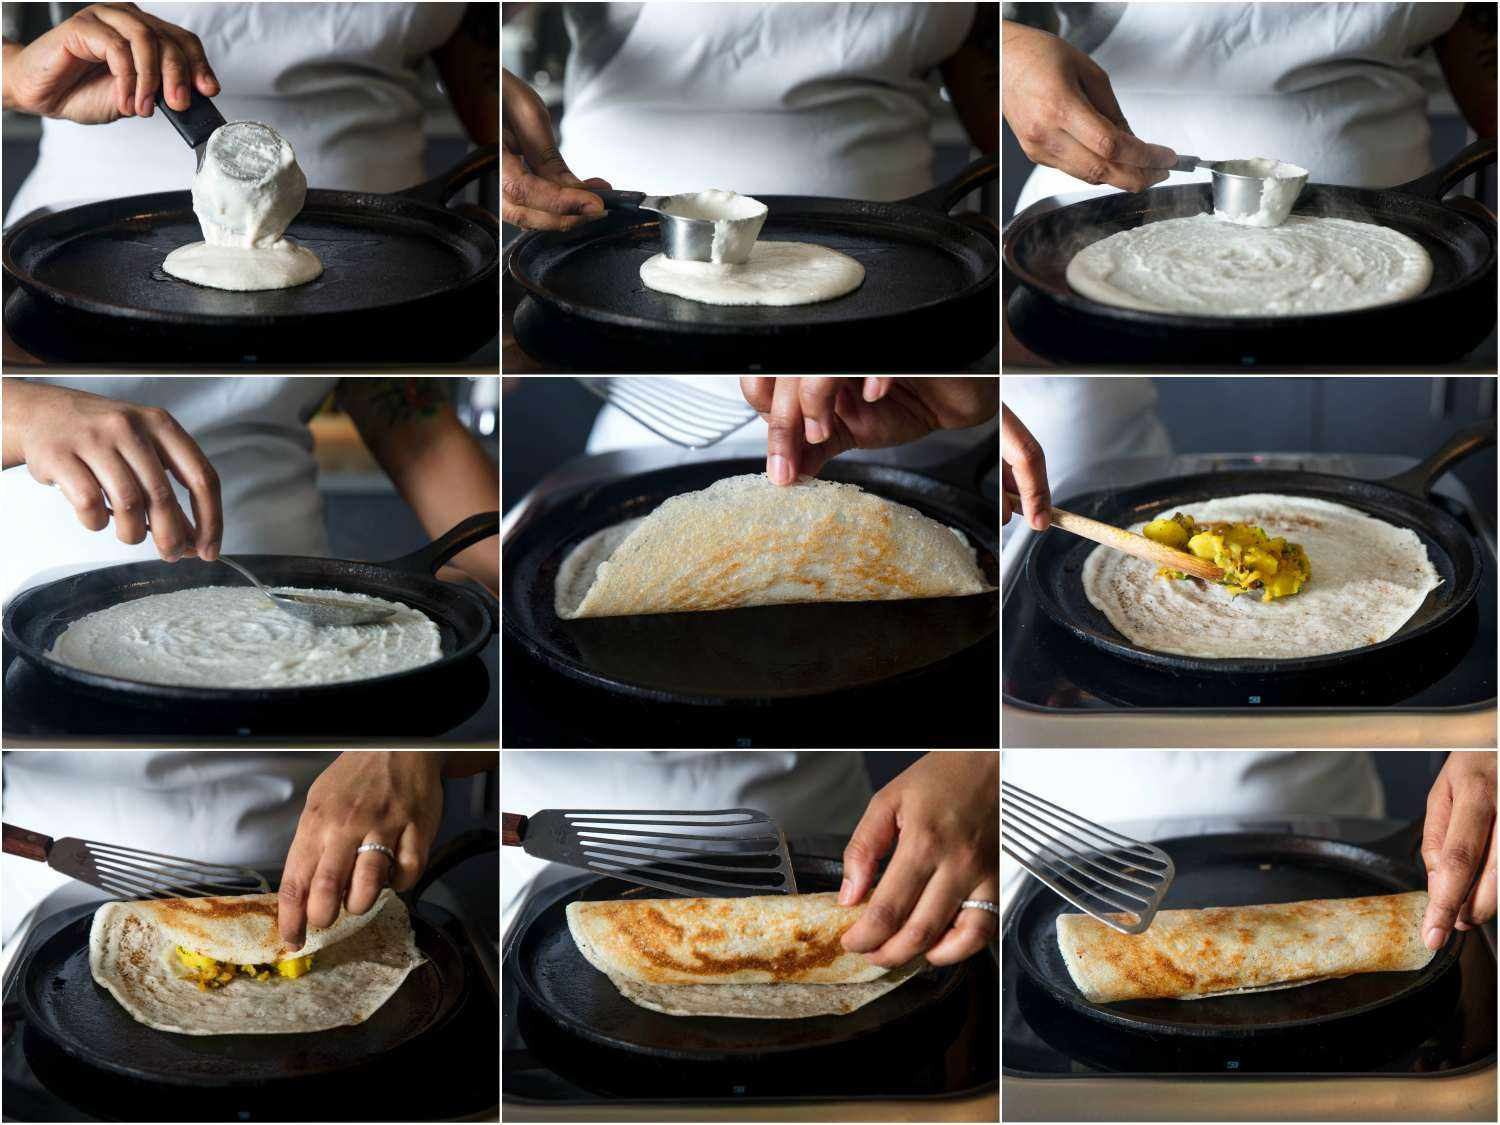 Collage showing stages of making a dosa: dropping batter onto a griddle, smoothing into a round, lifting edges, adding filling, and folding over